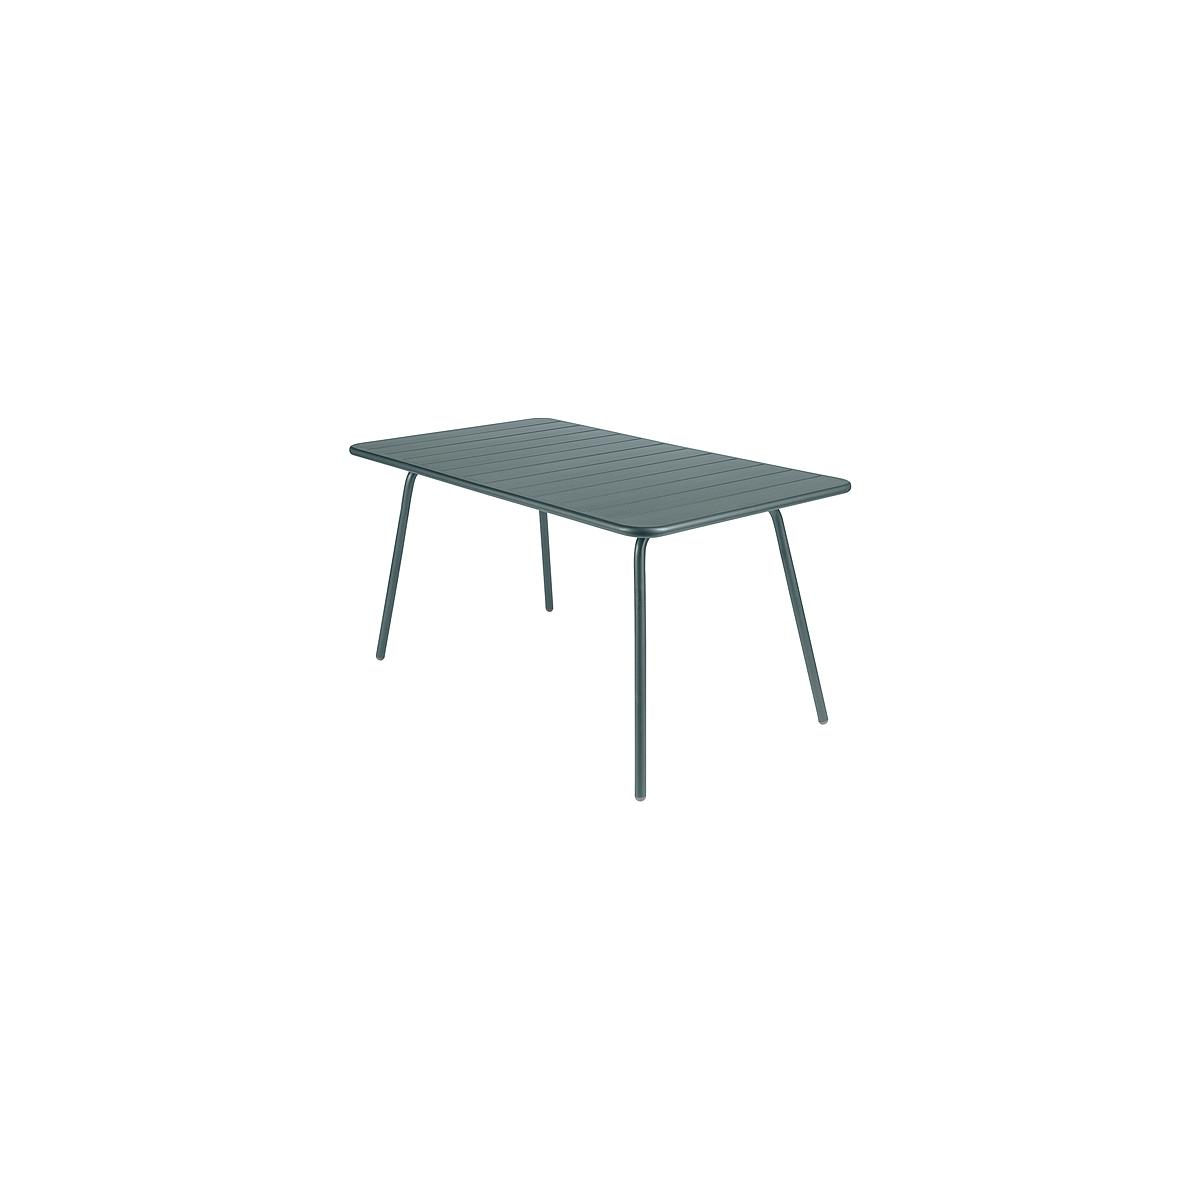 LUXEMBOURG by Fermob Table 143x80 cm gris orage